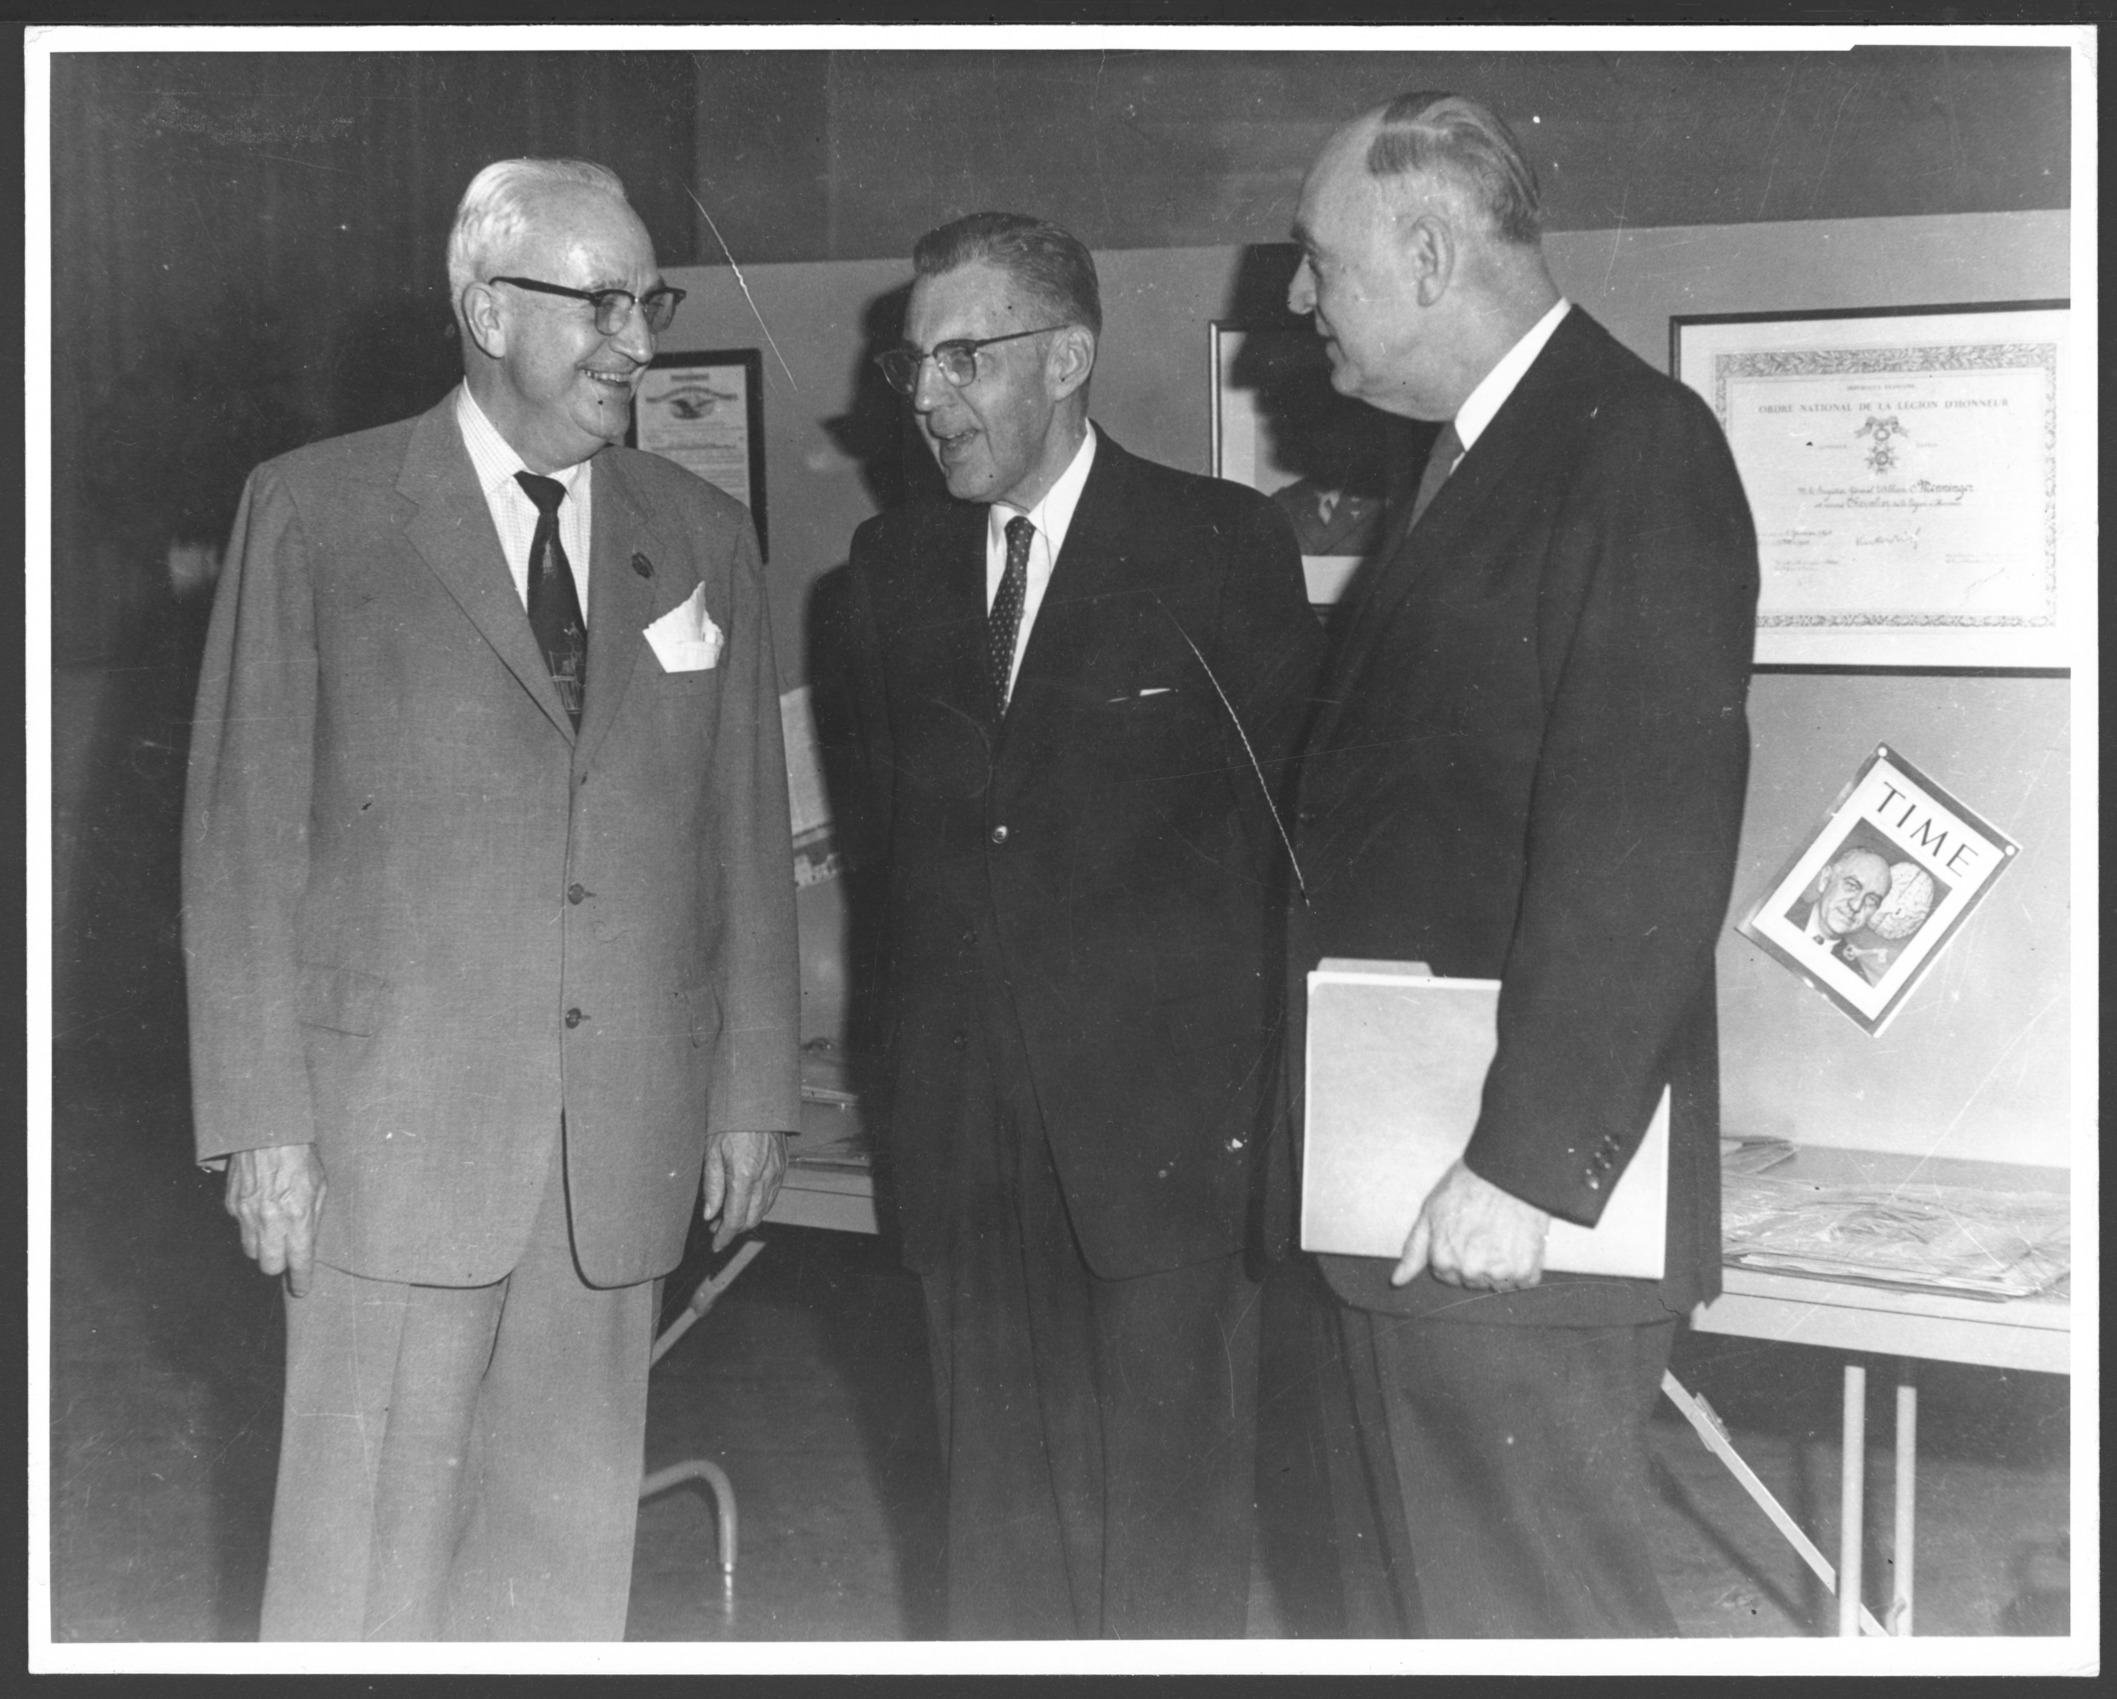 Menninger photograph collection - #1865  Dr. Karl, David Neiswanger, Dr. Will in 1959